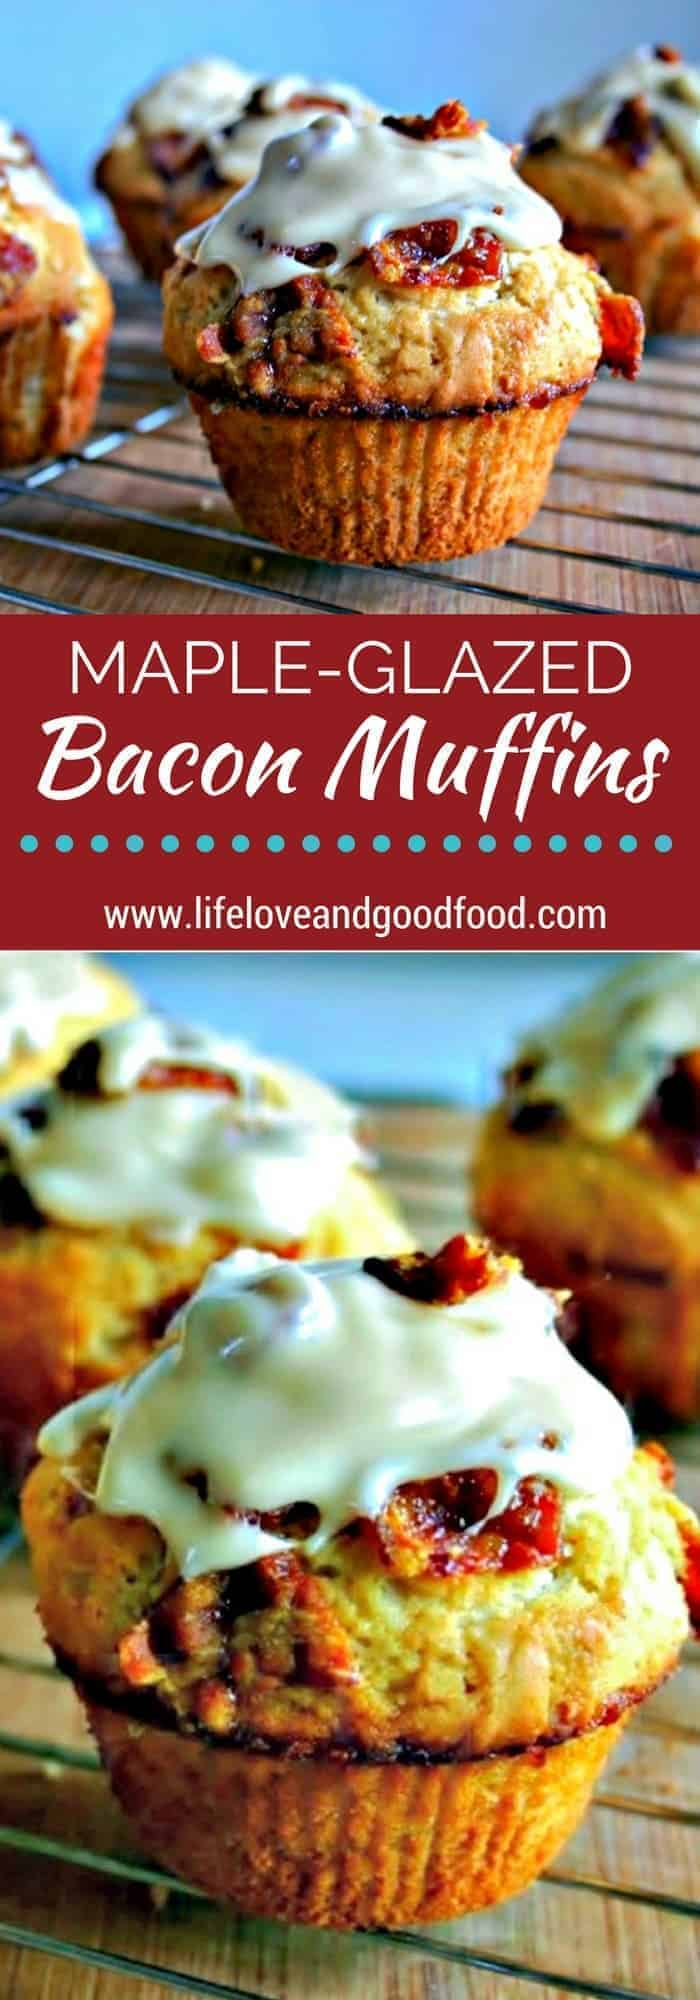 Sweet and salty at it's finest. Maple-Glazed Bacon Muffins make a delicious brunch dessert.